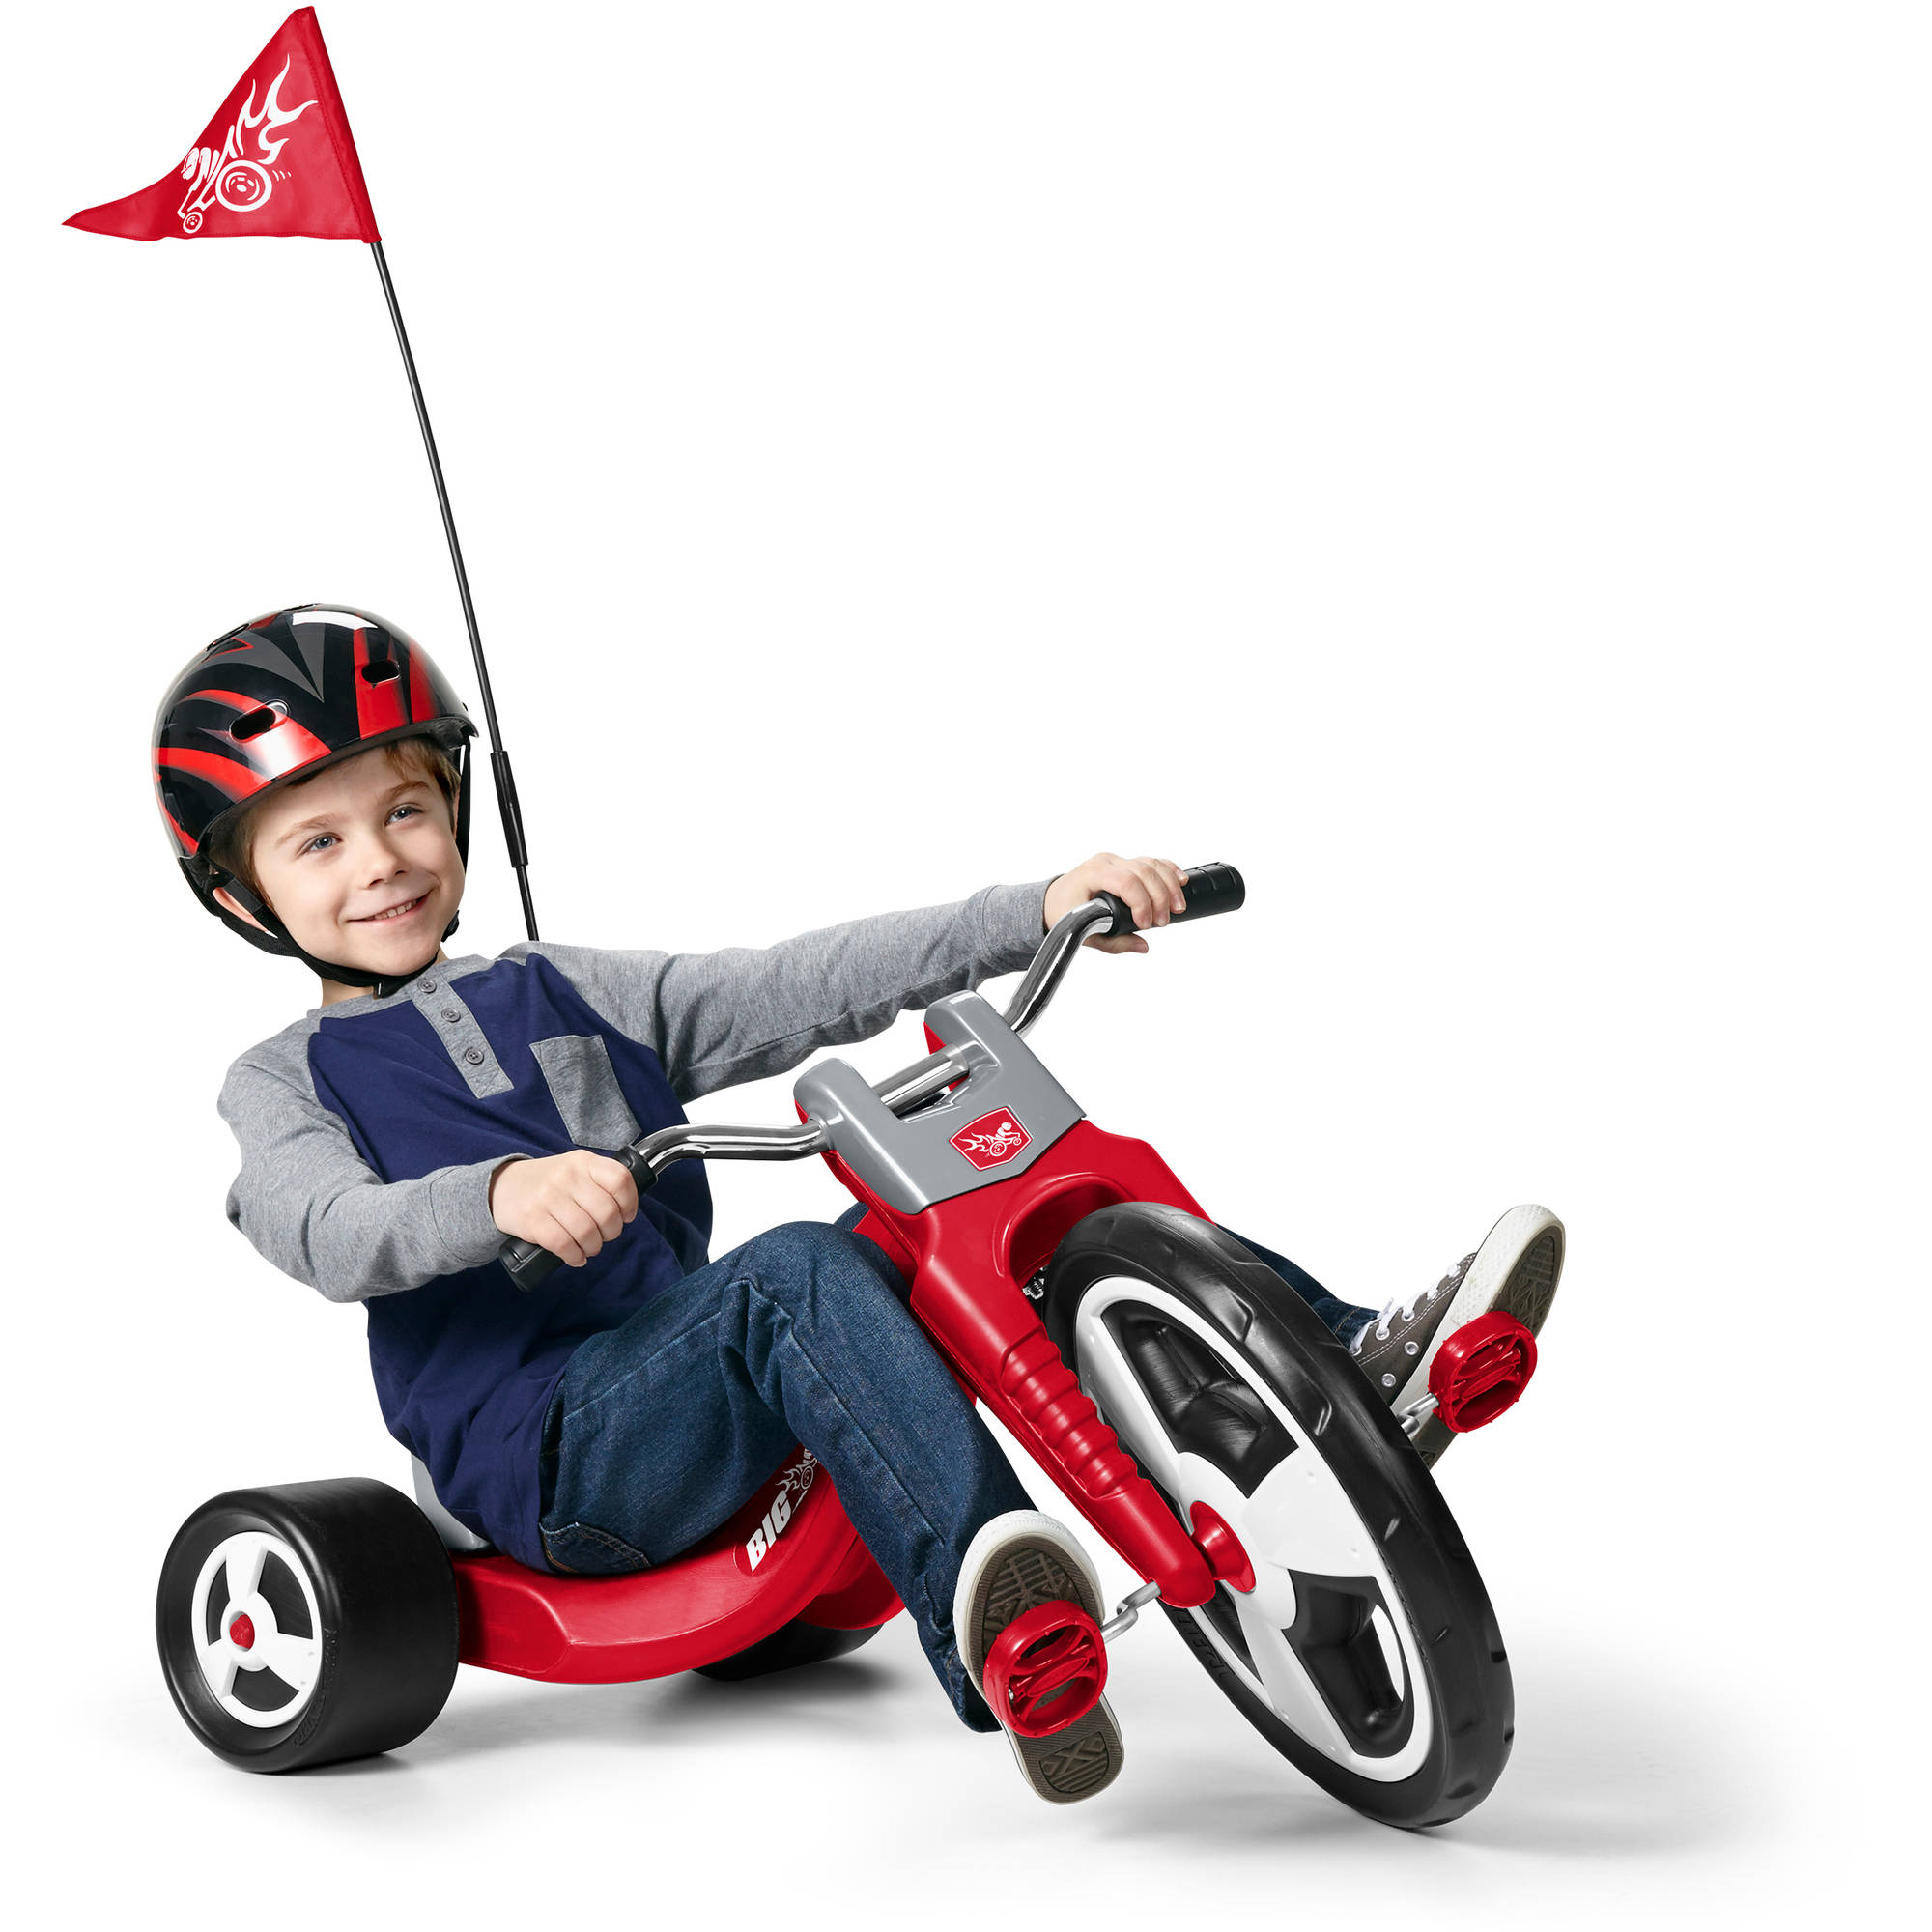 Radio Flyer Big Flyer Sport Trike